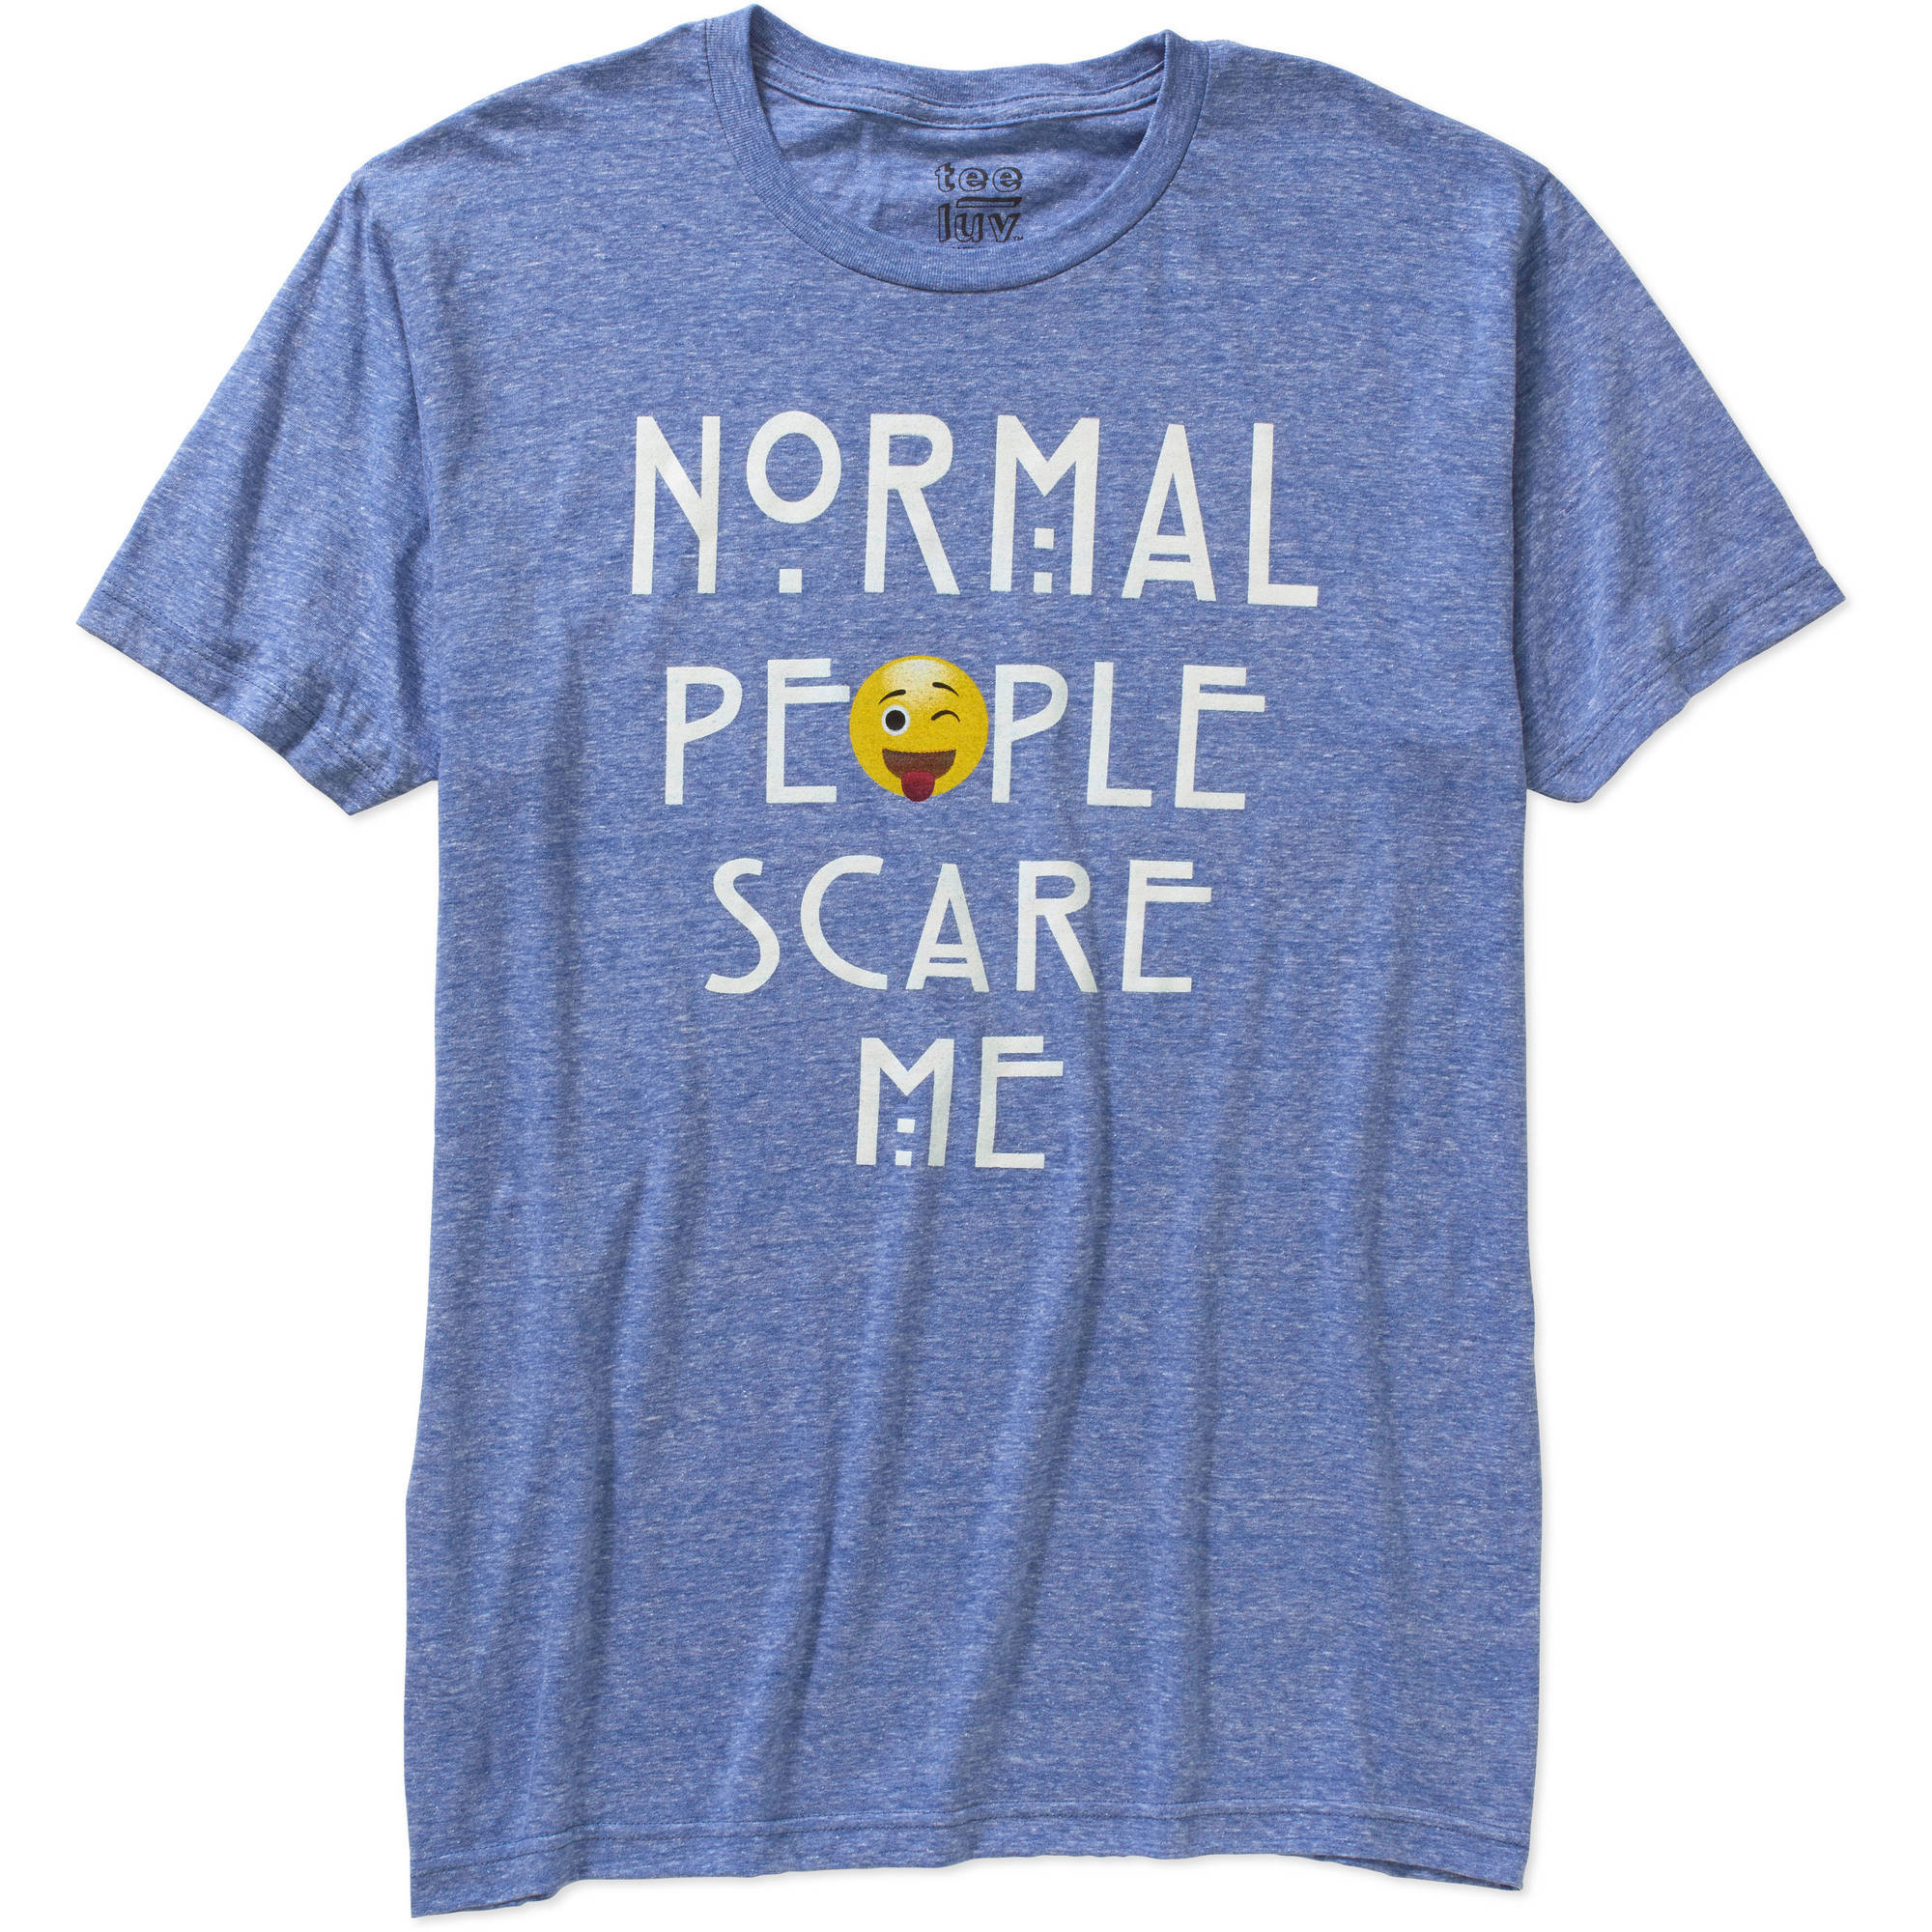 Normal People Scare Me Men's Graphic Tee